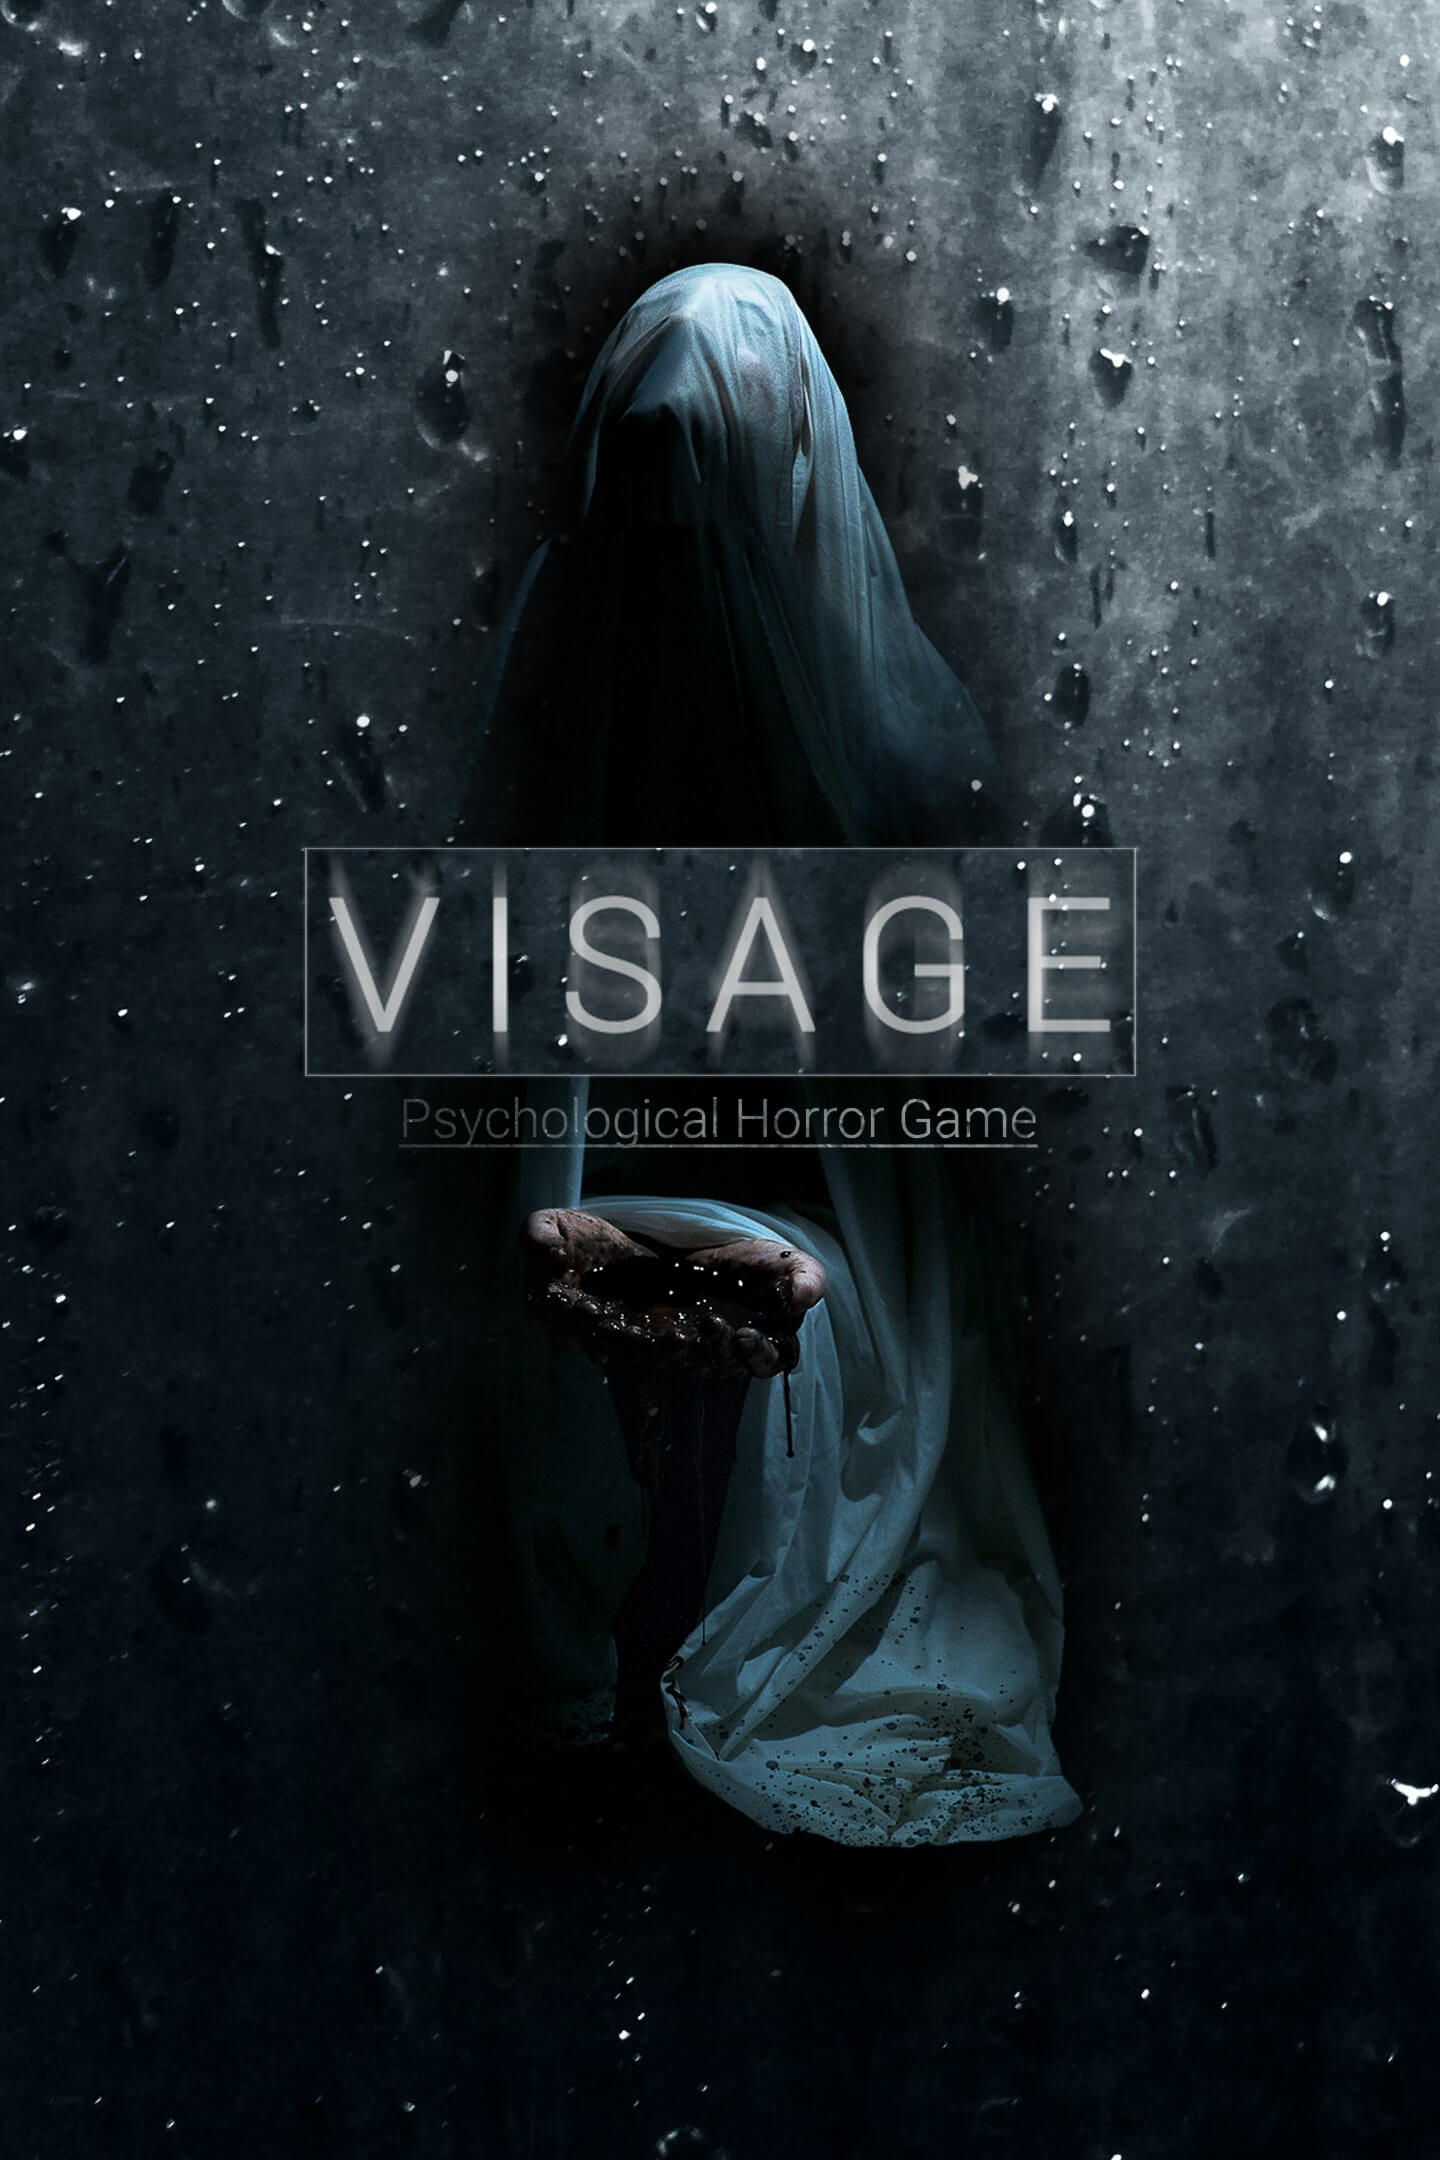 https://img5.downloadha.com/hosein/files/2020/10/Visage-pc-cover-large.jpg